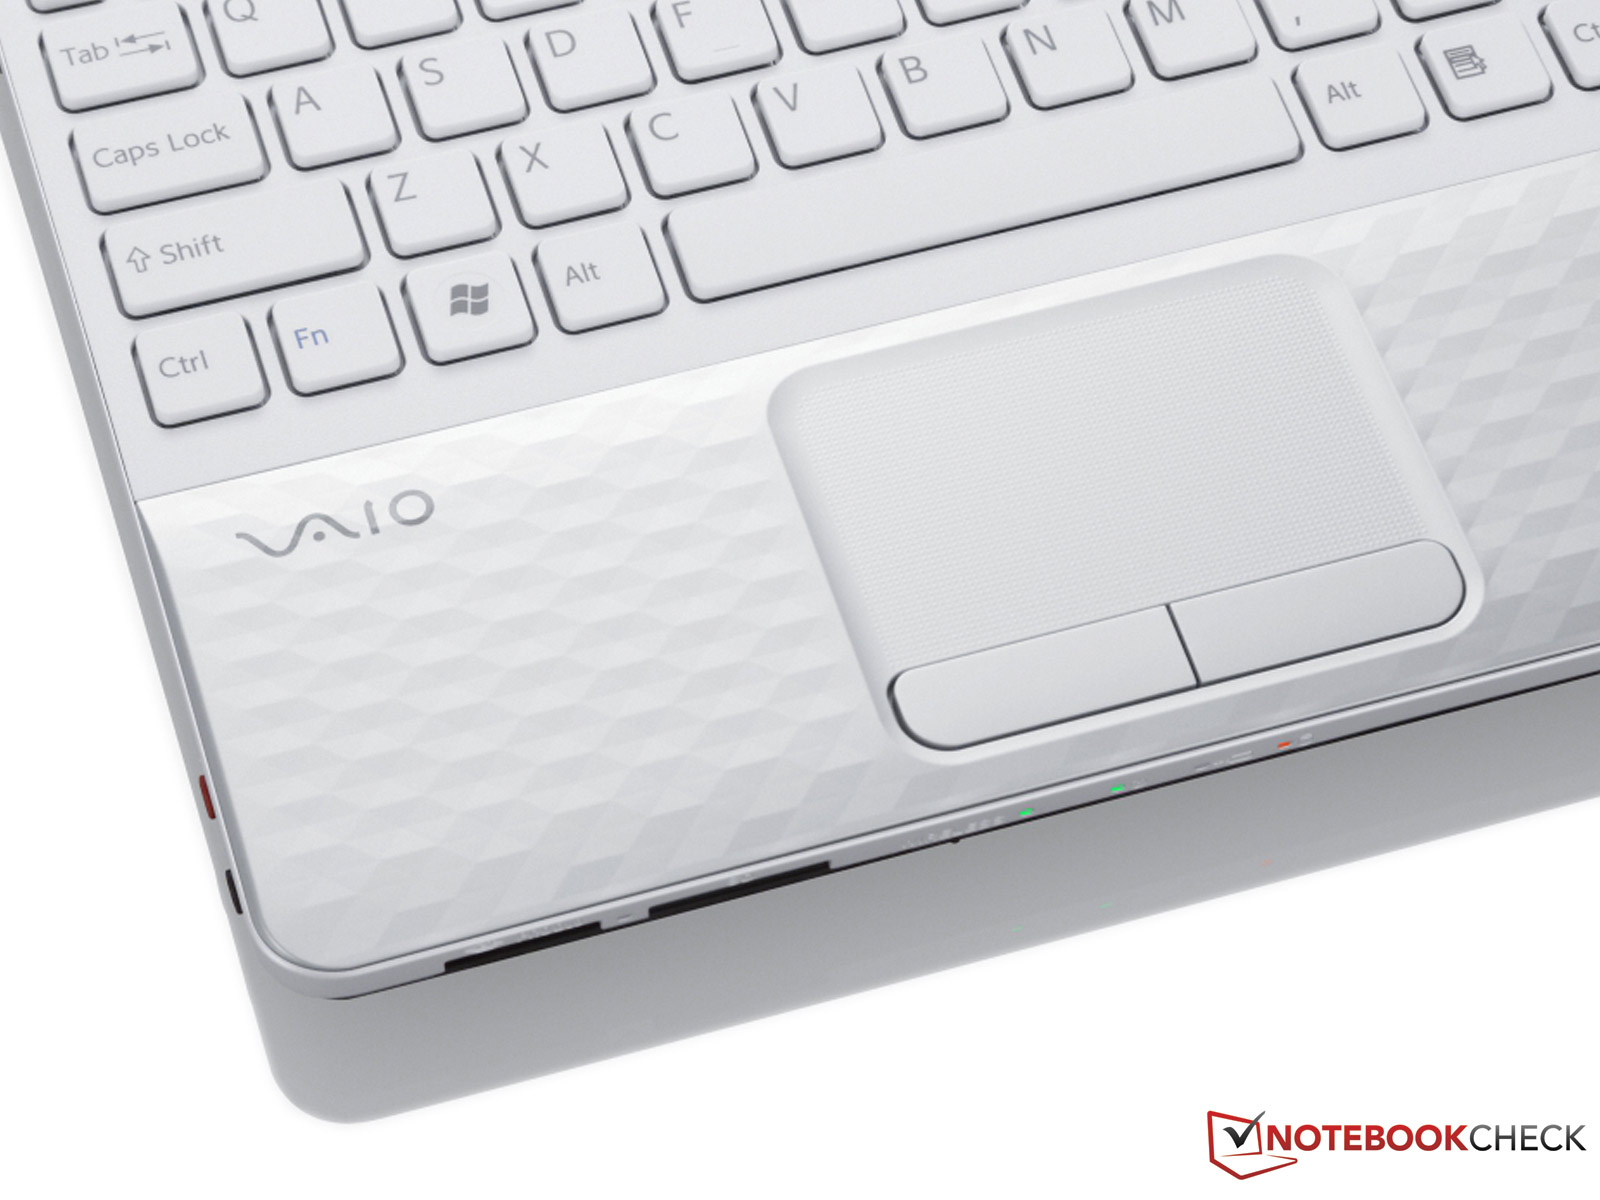 Sony Vaio VPCEH2KFX/B Conexant SmartAudio HD Windows Vista 64-BIT